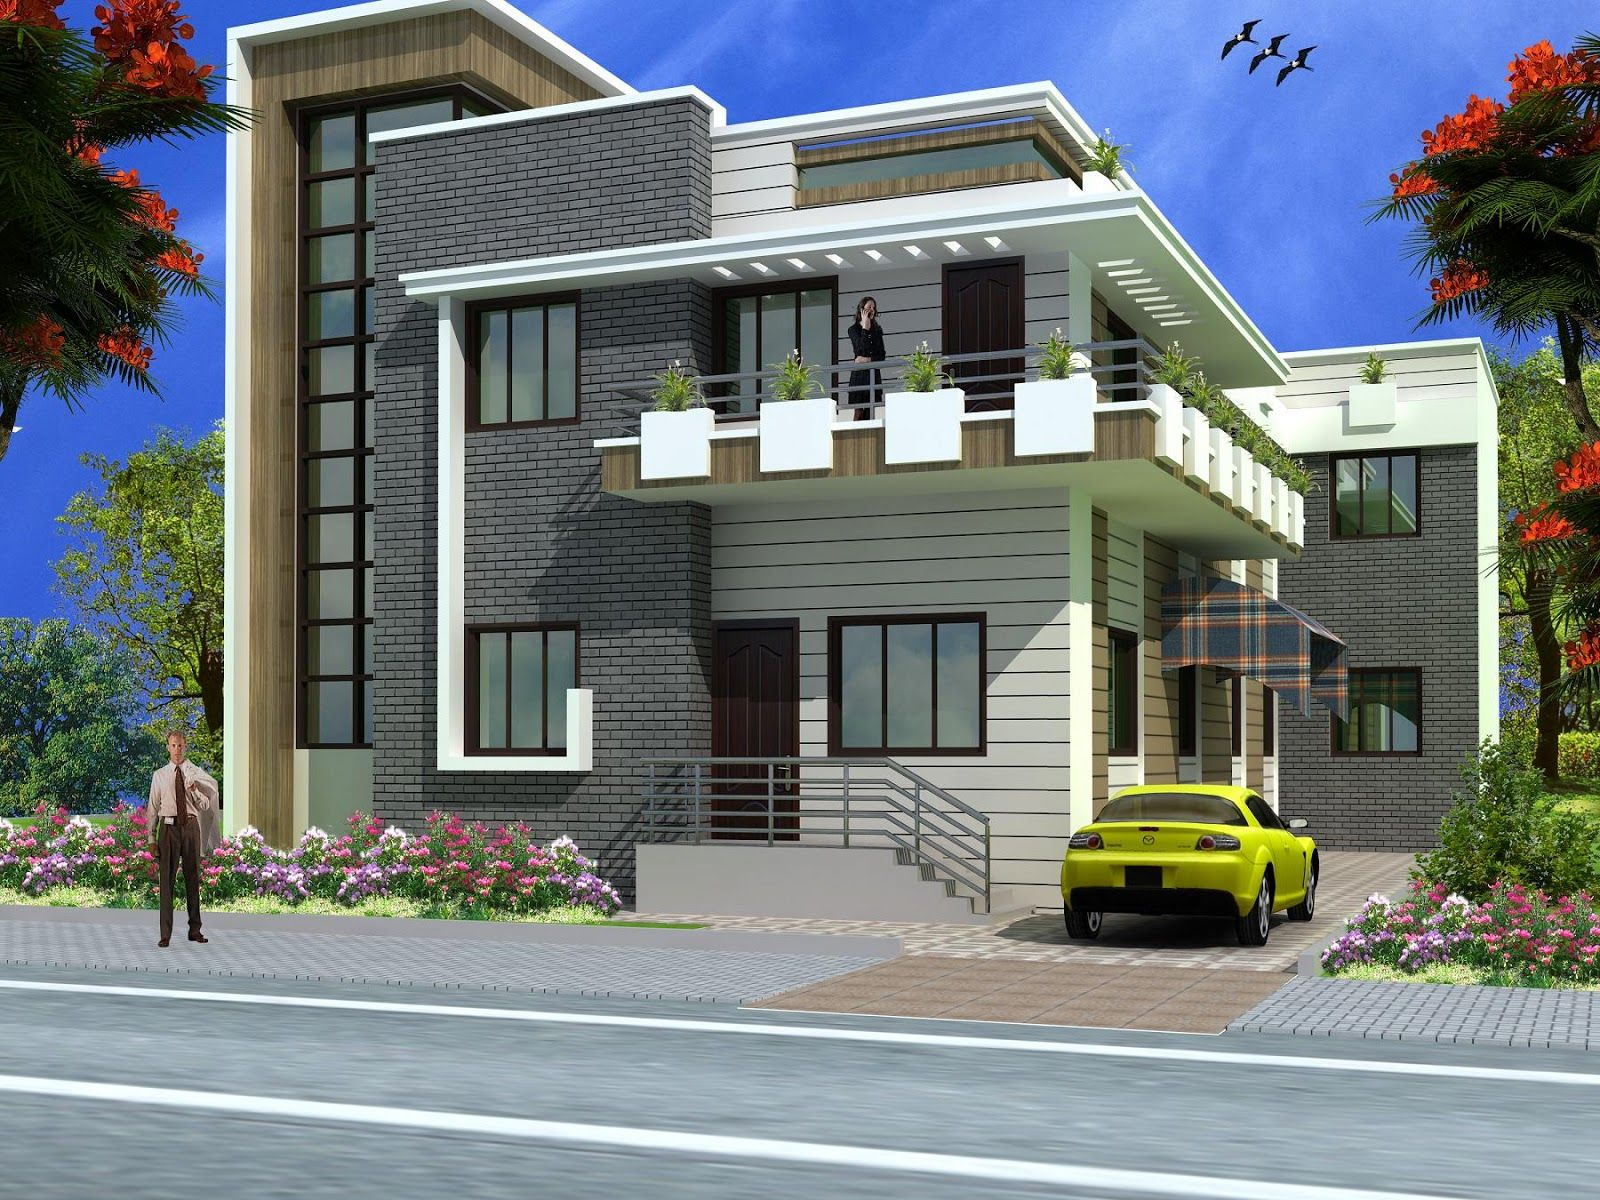 Architectural designs of indian houses pics pinterest for Contemporary home designs india